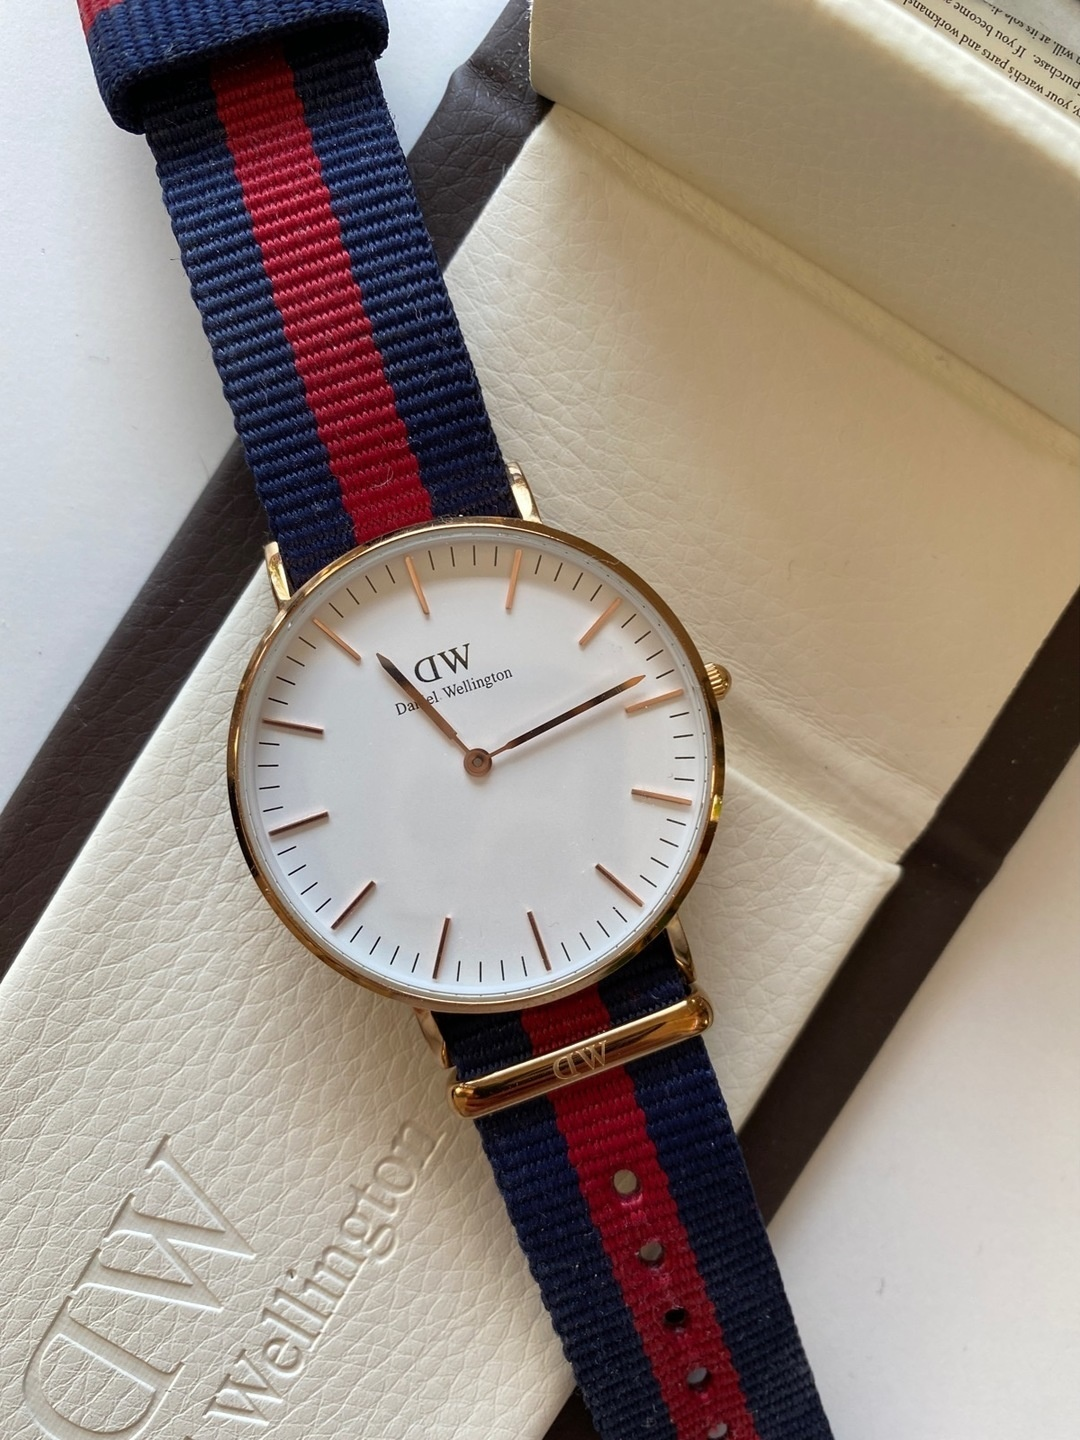 Women's watches - DANIEL WELLINGTON photo 2